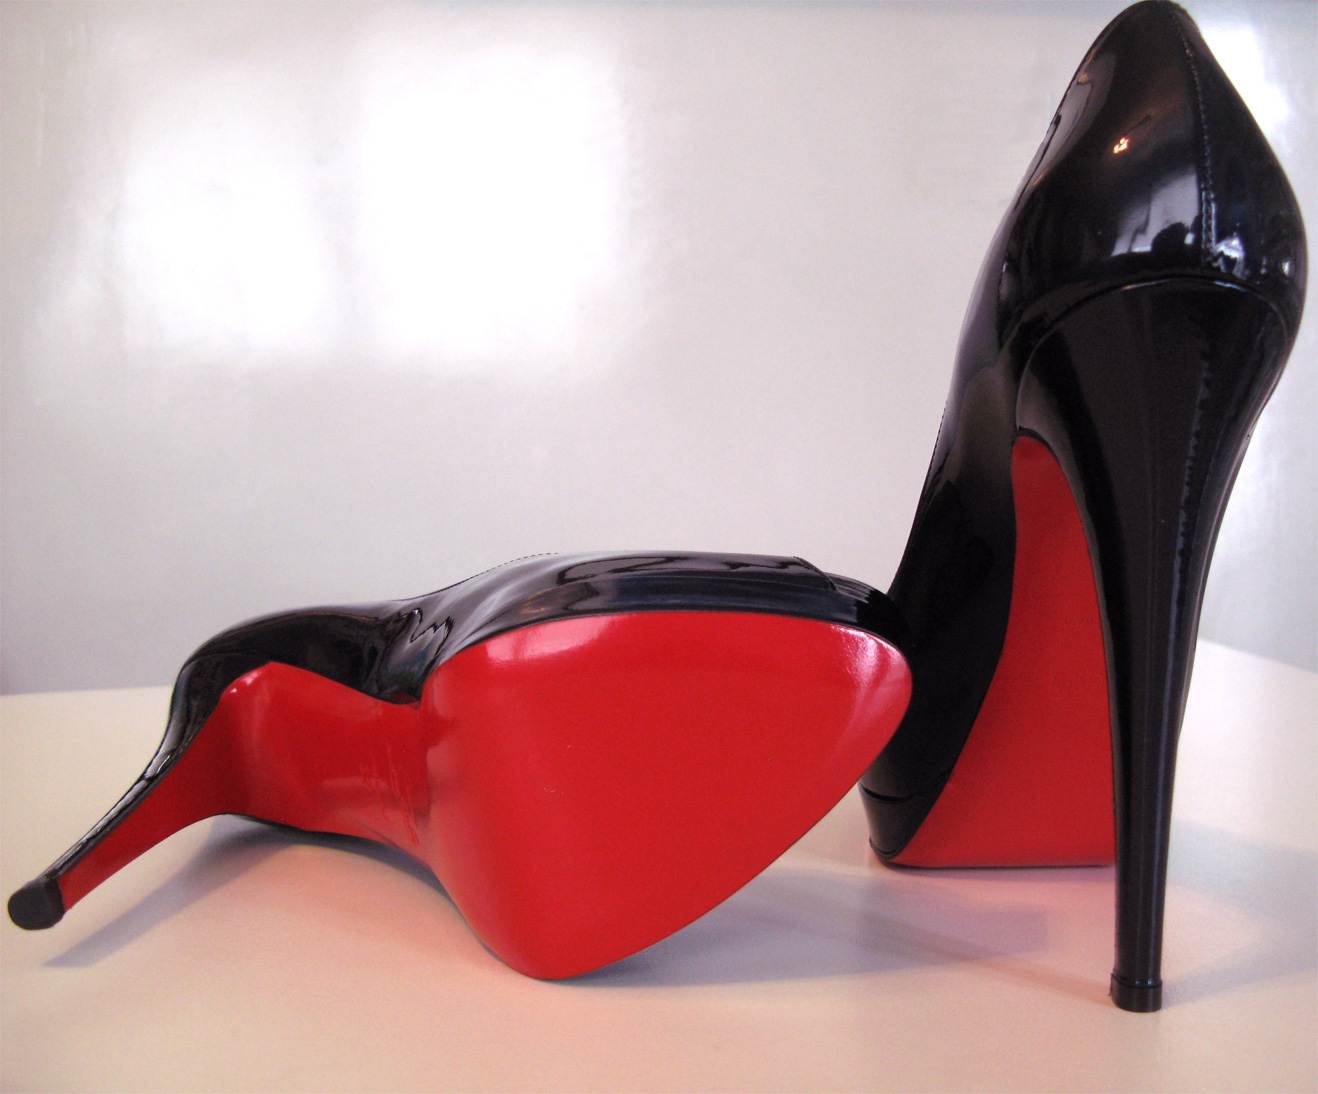 cheap replica christian louboutins - Christian Louboutin - Wikipedia, the free encyclopedia